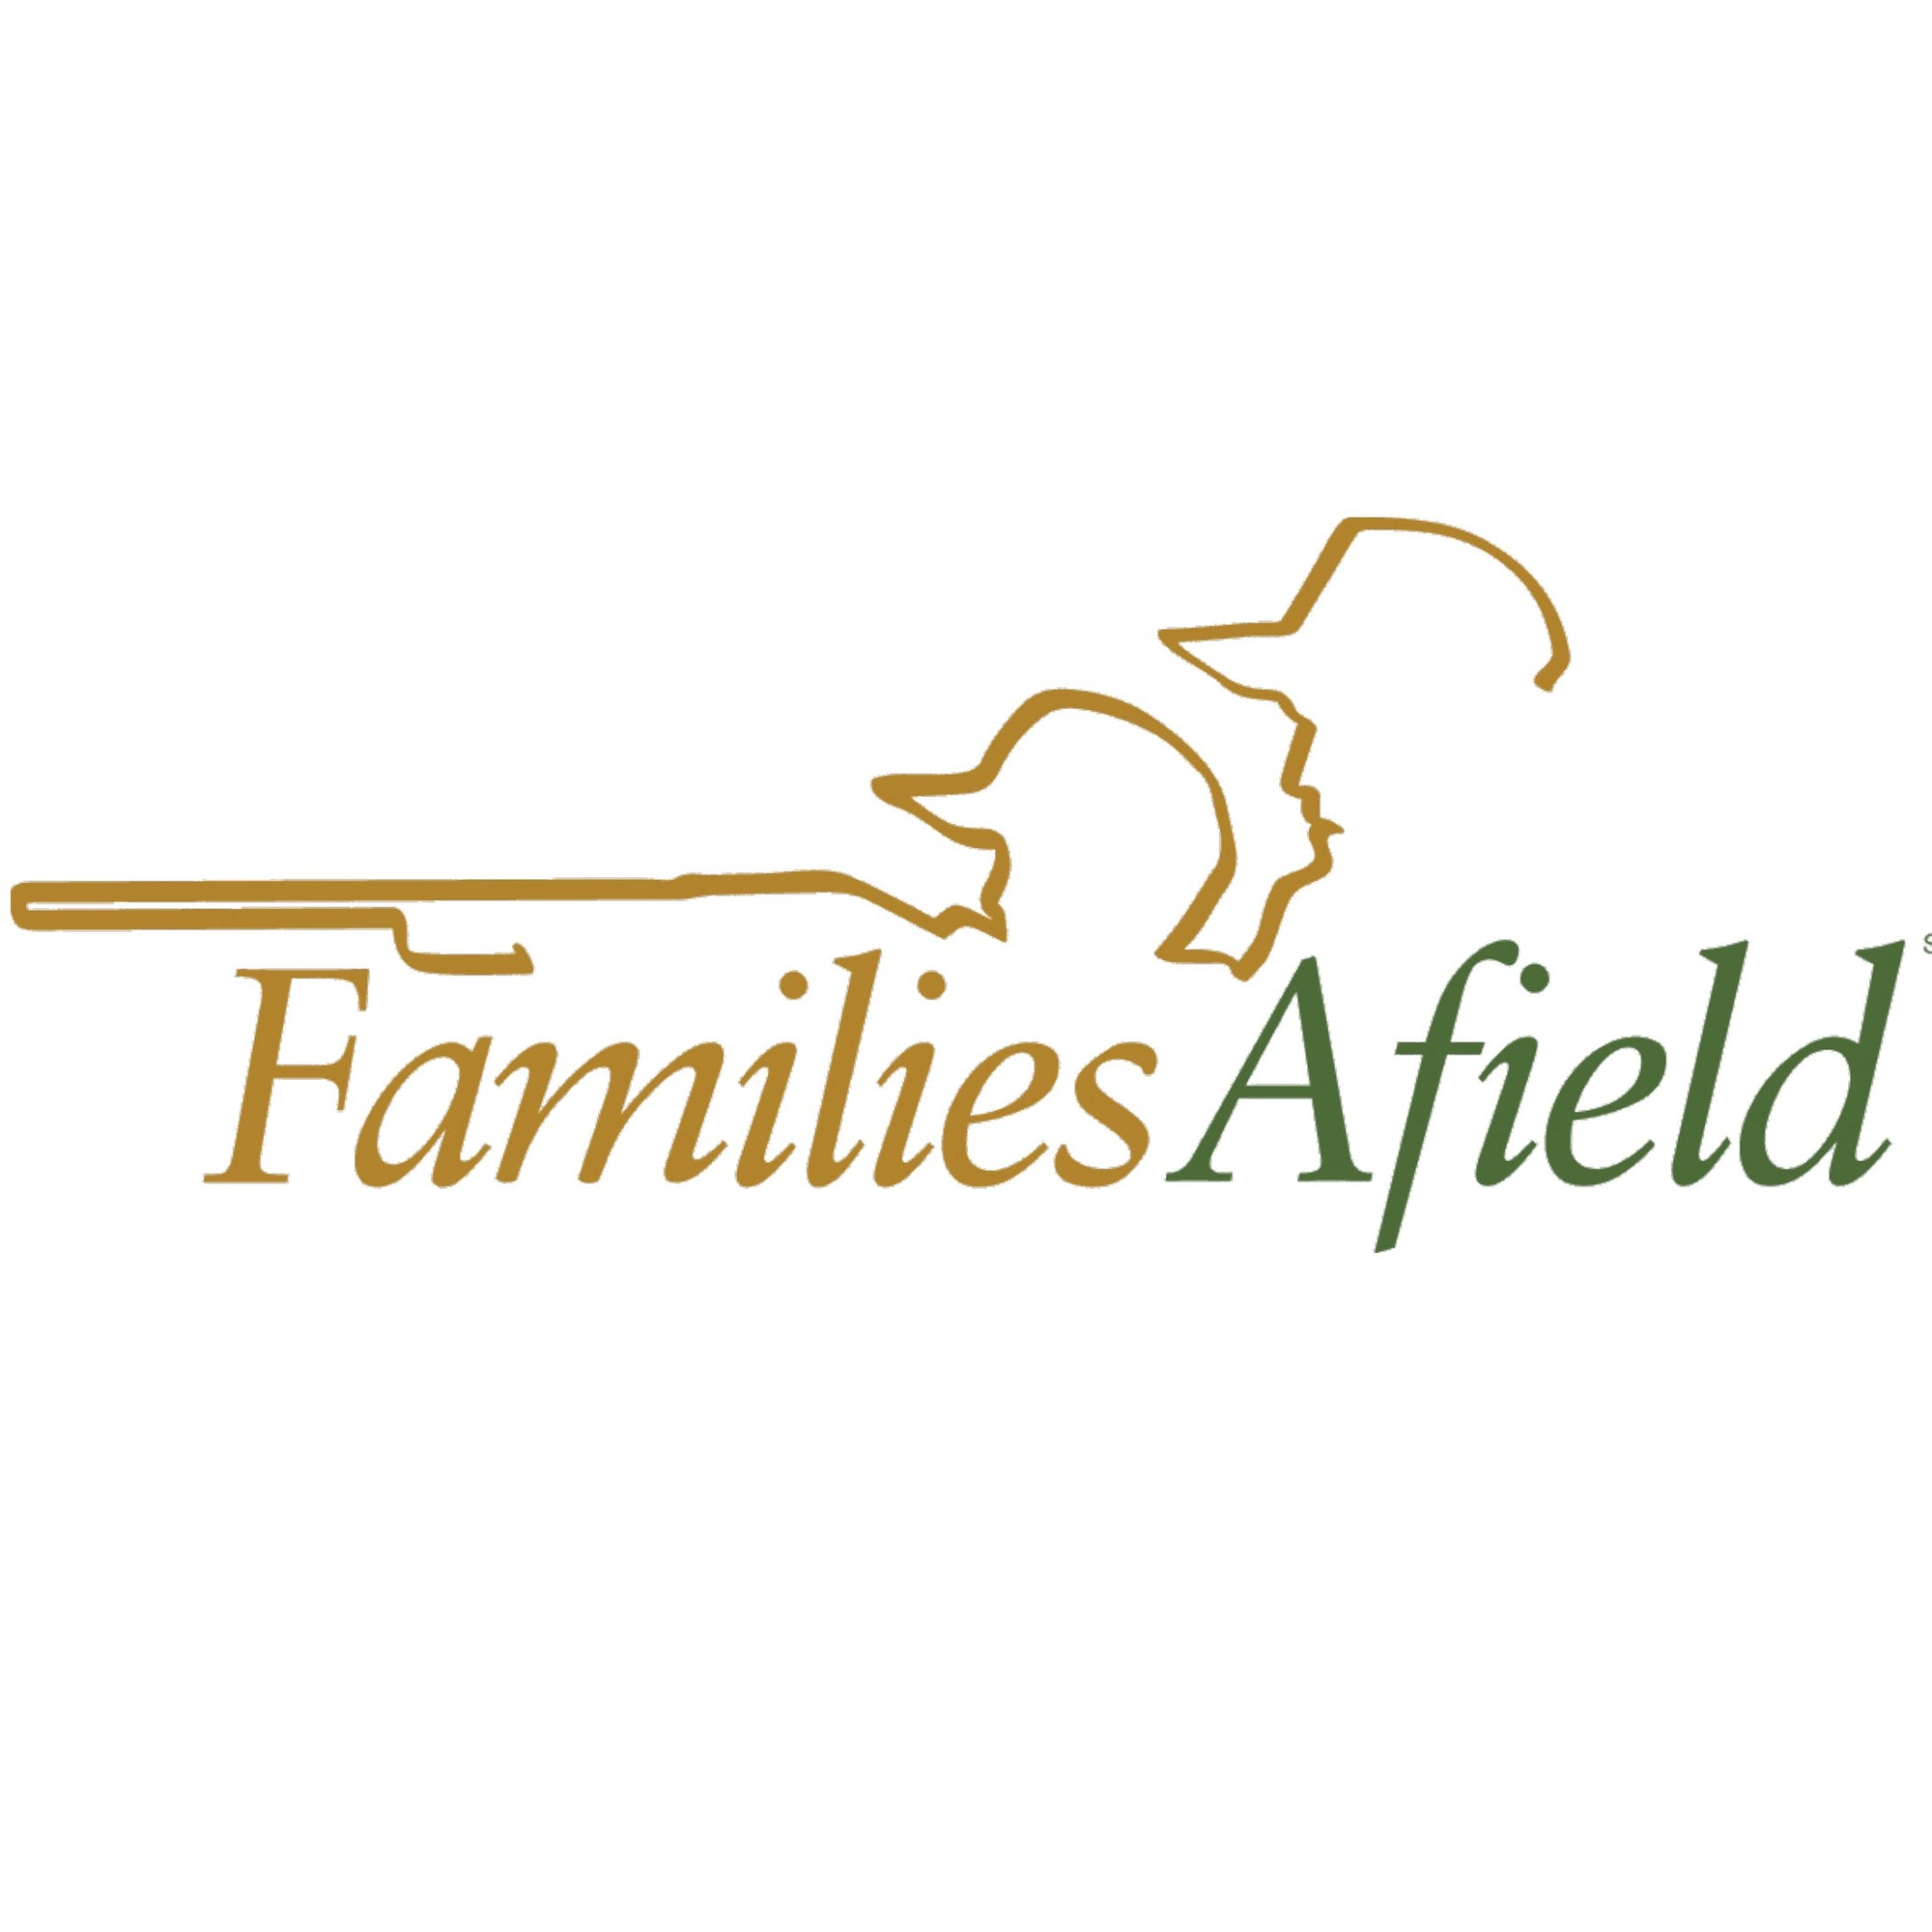 Programs: Families Afield